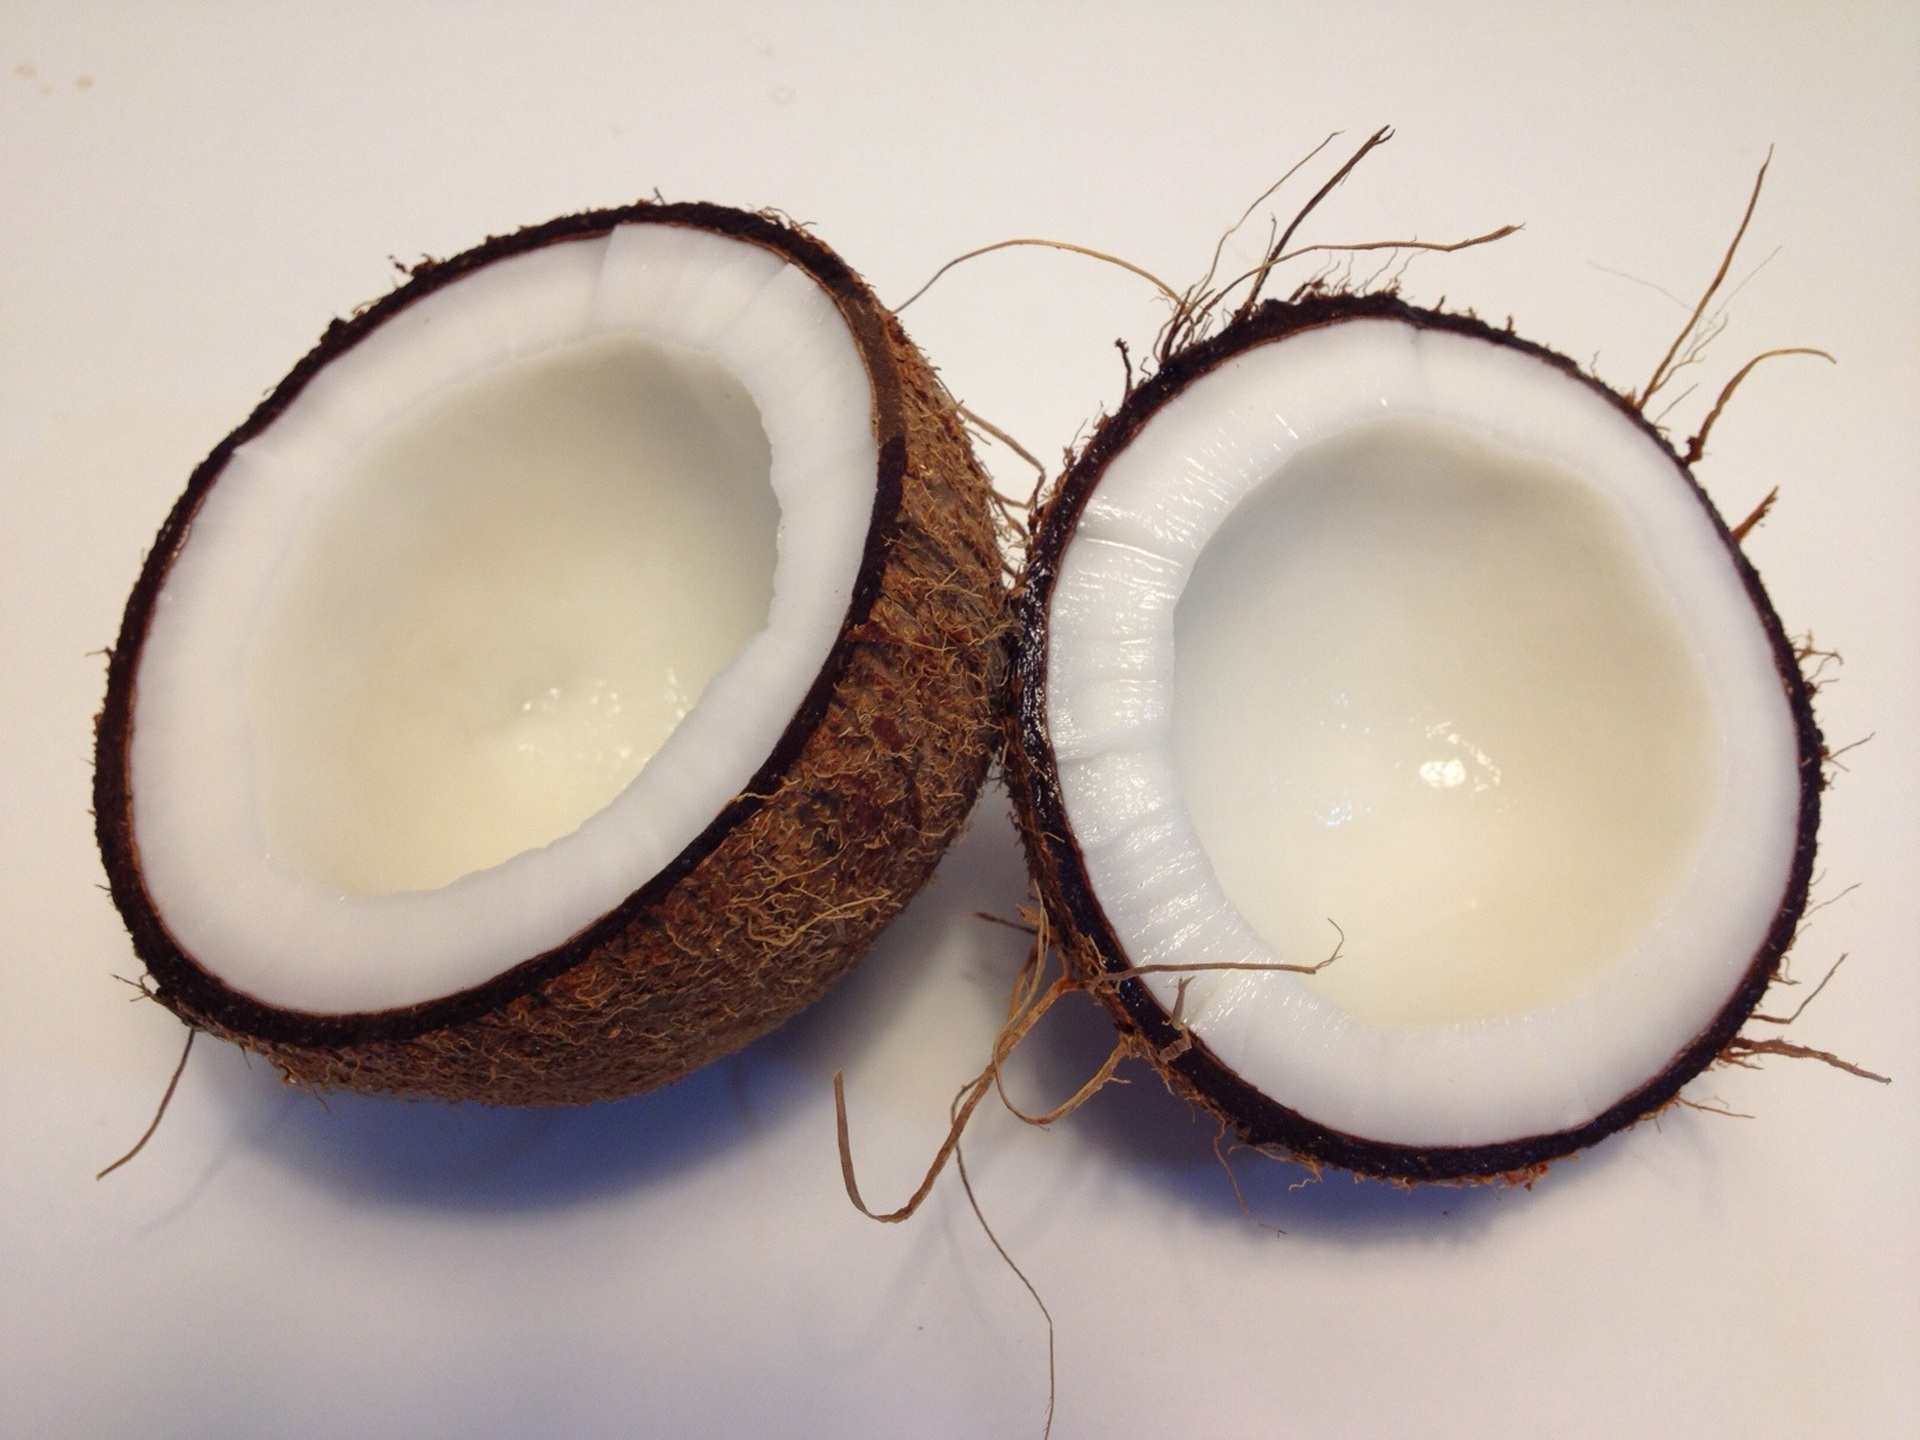 , Coconut Oil Hacks That Are Definitely Worth Trying